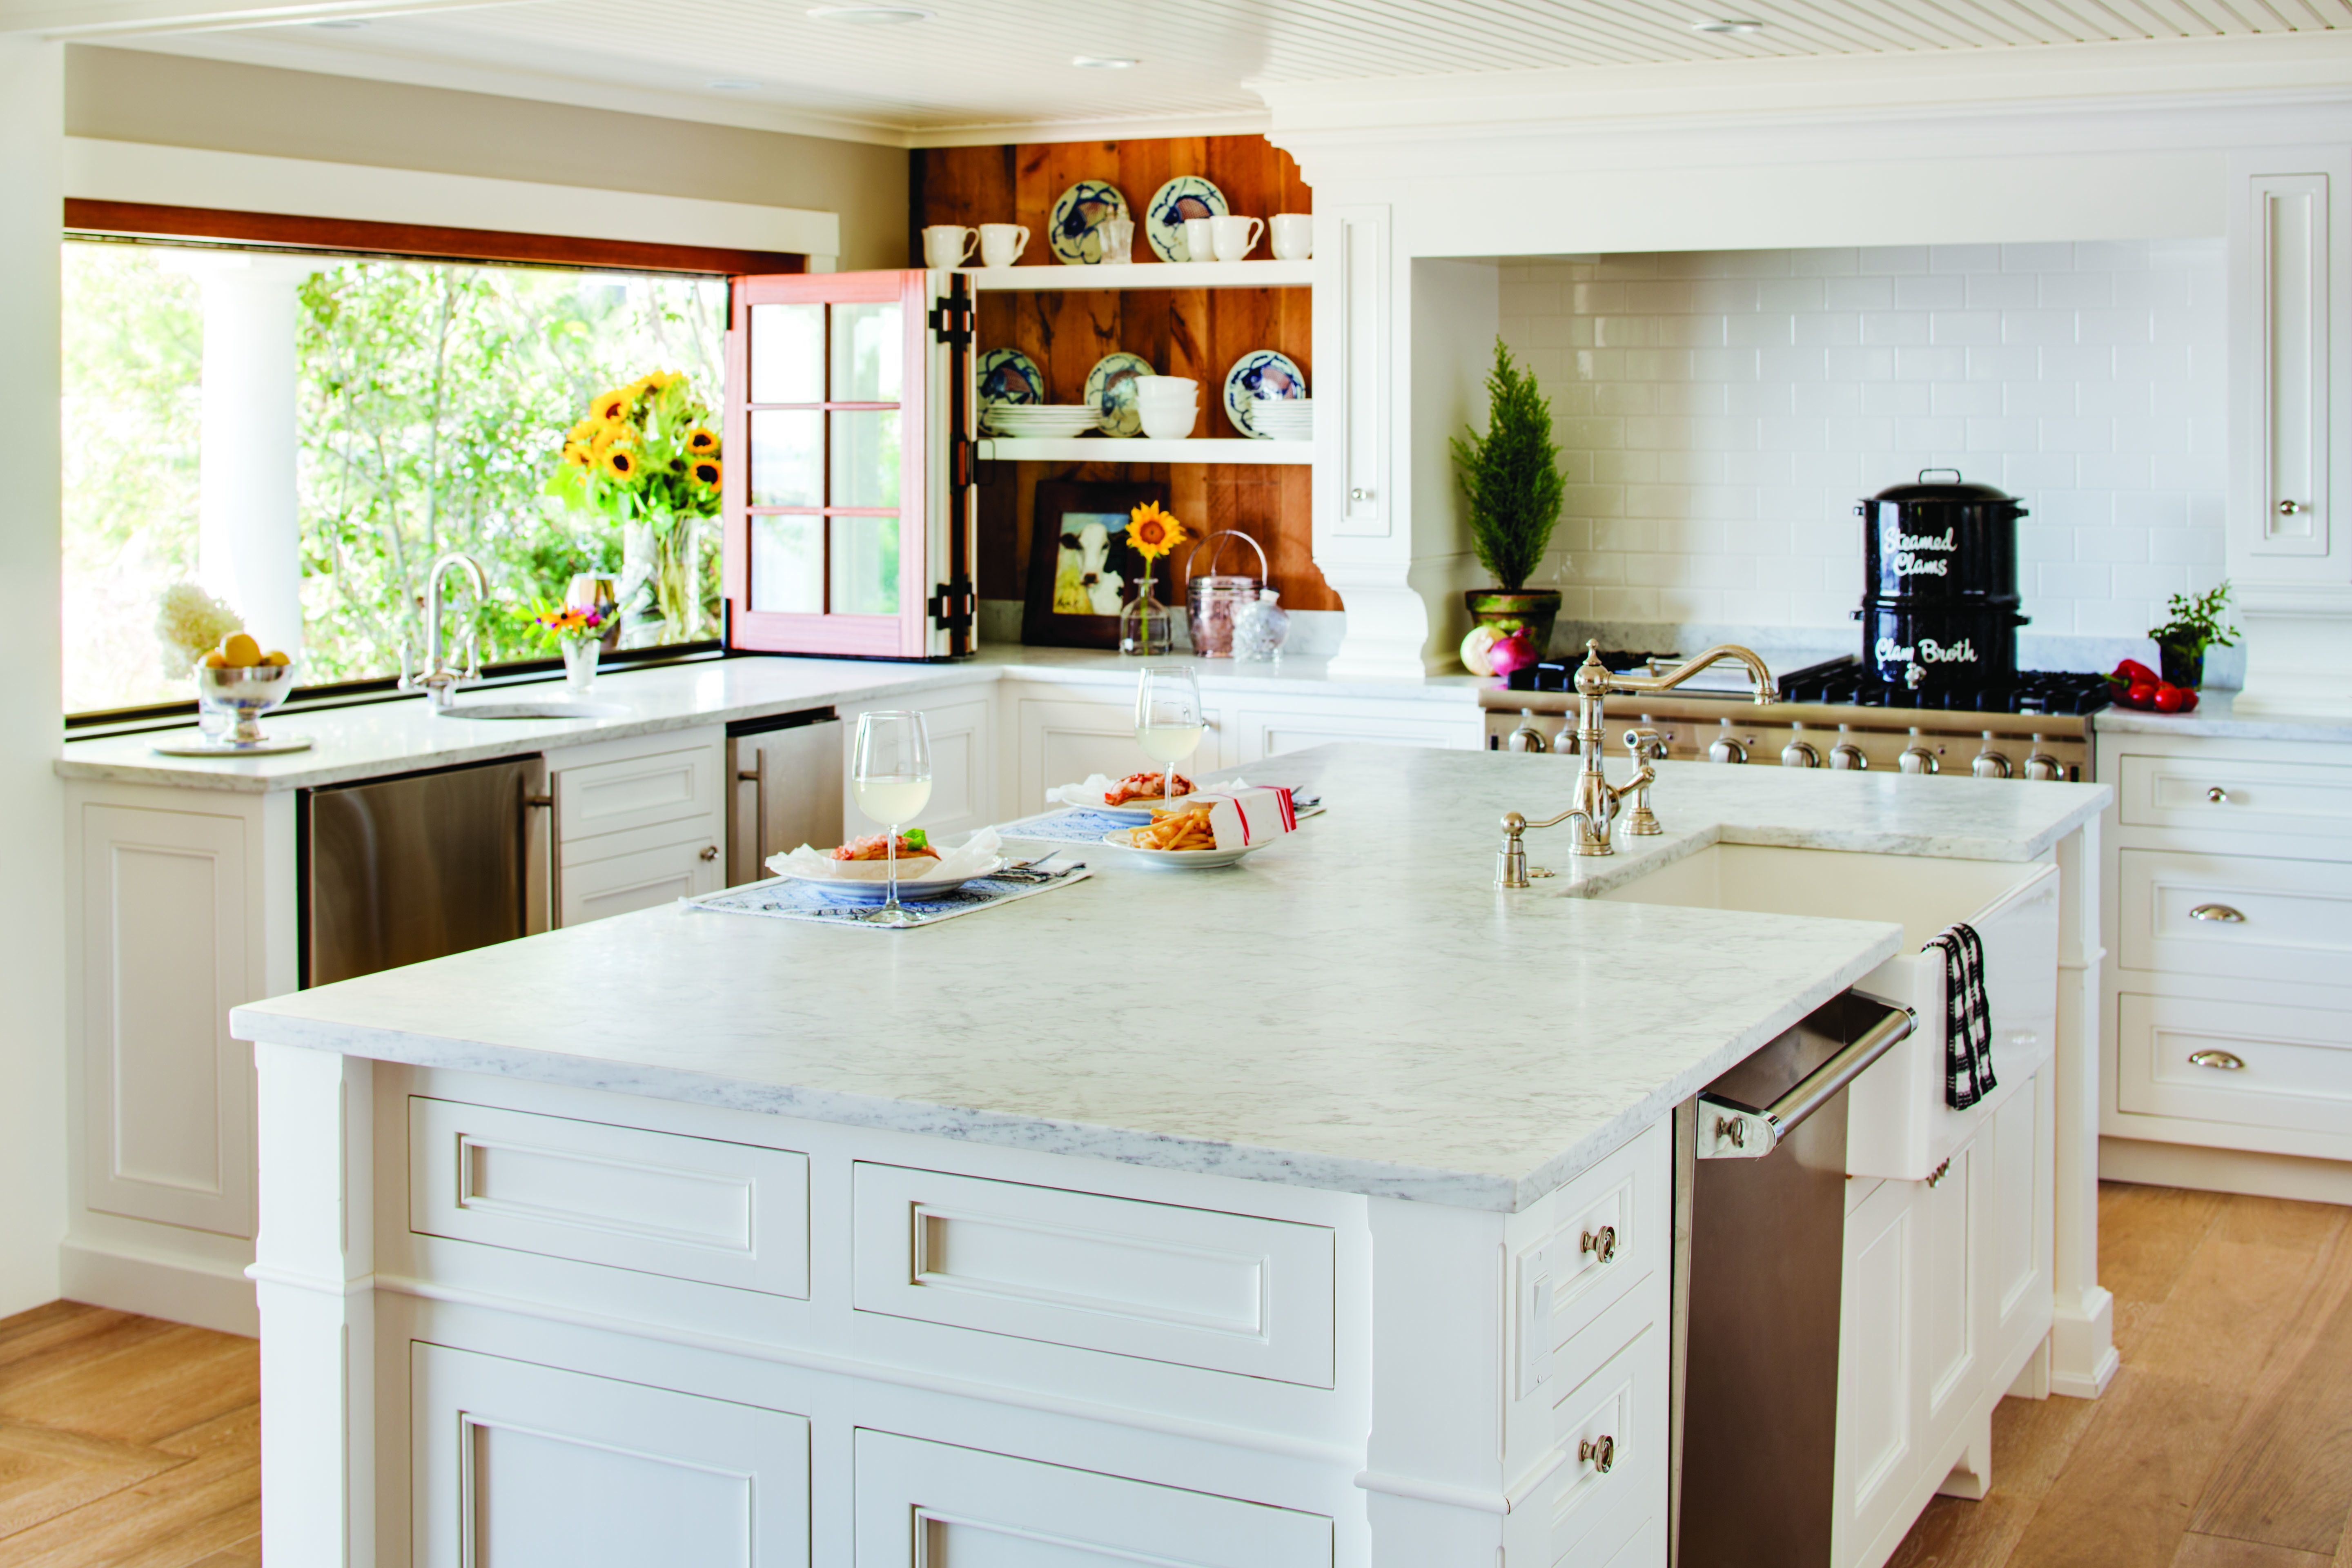 Custom Home Builders Archives - Maine Home + Design